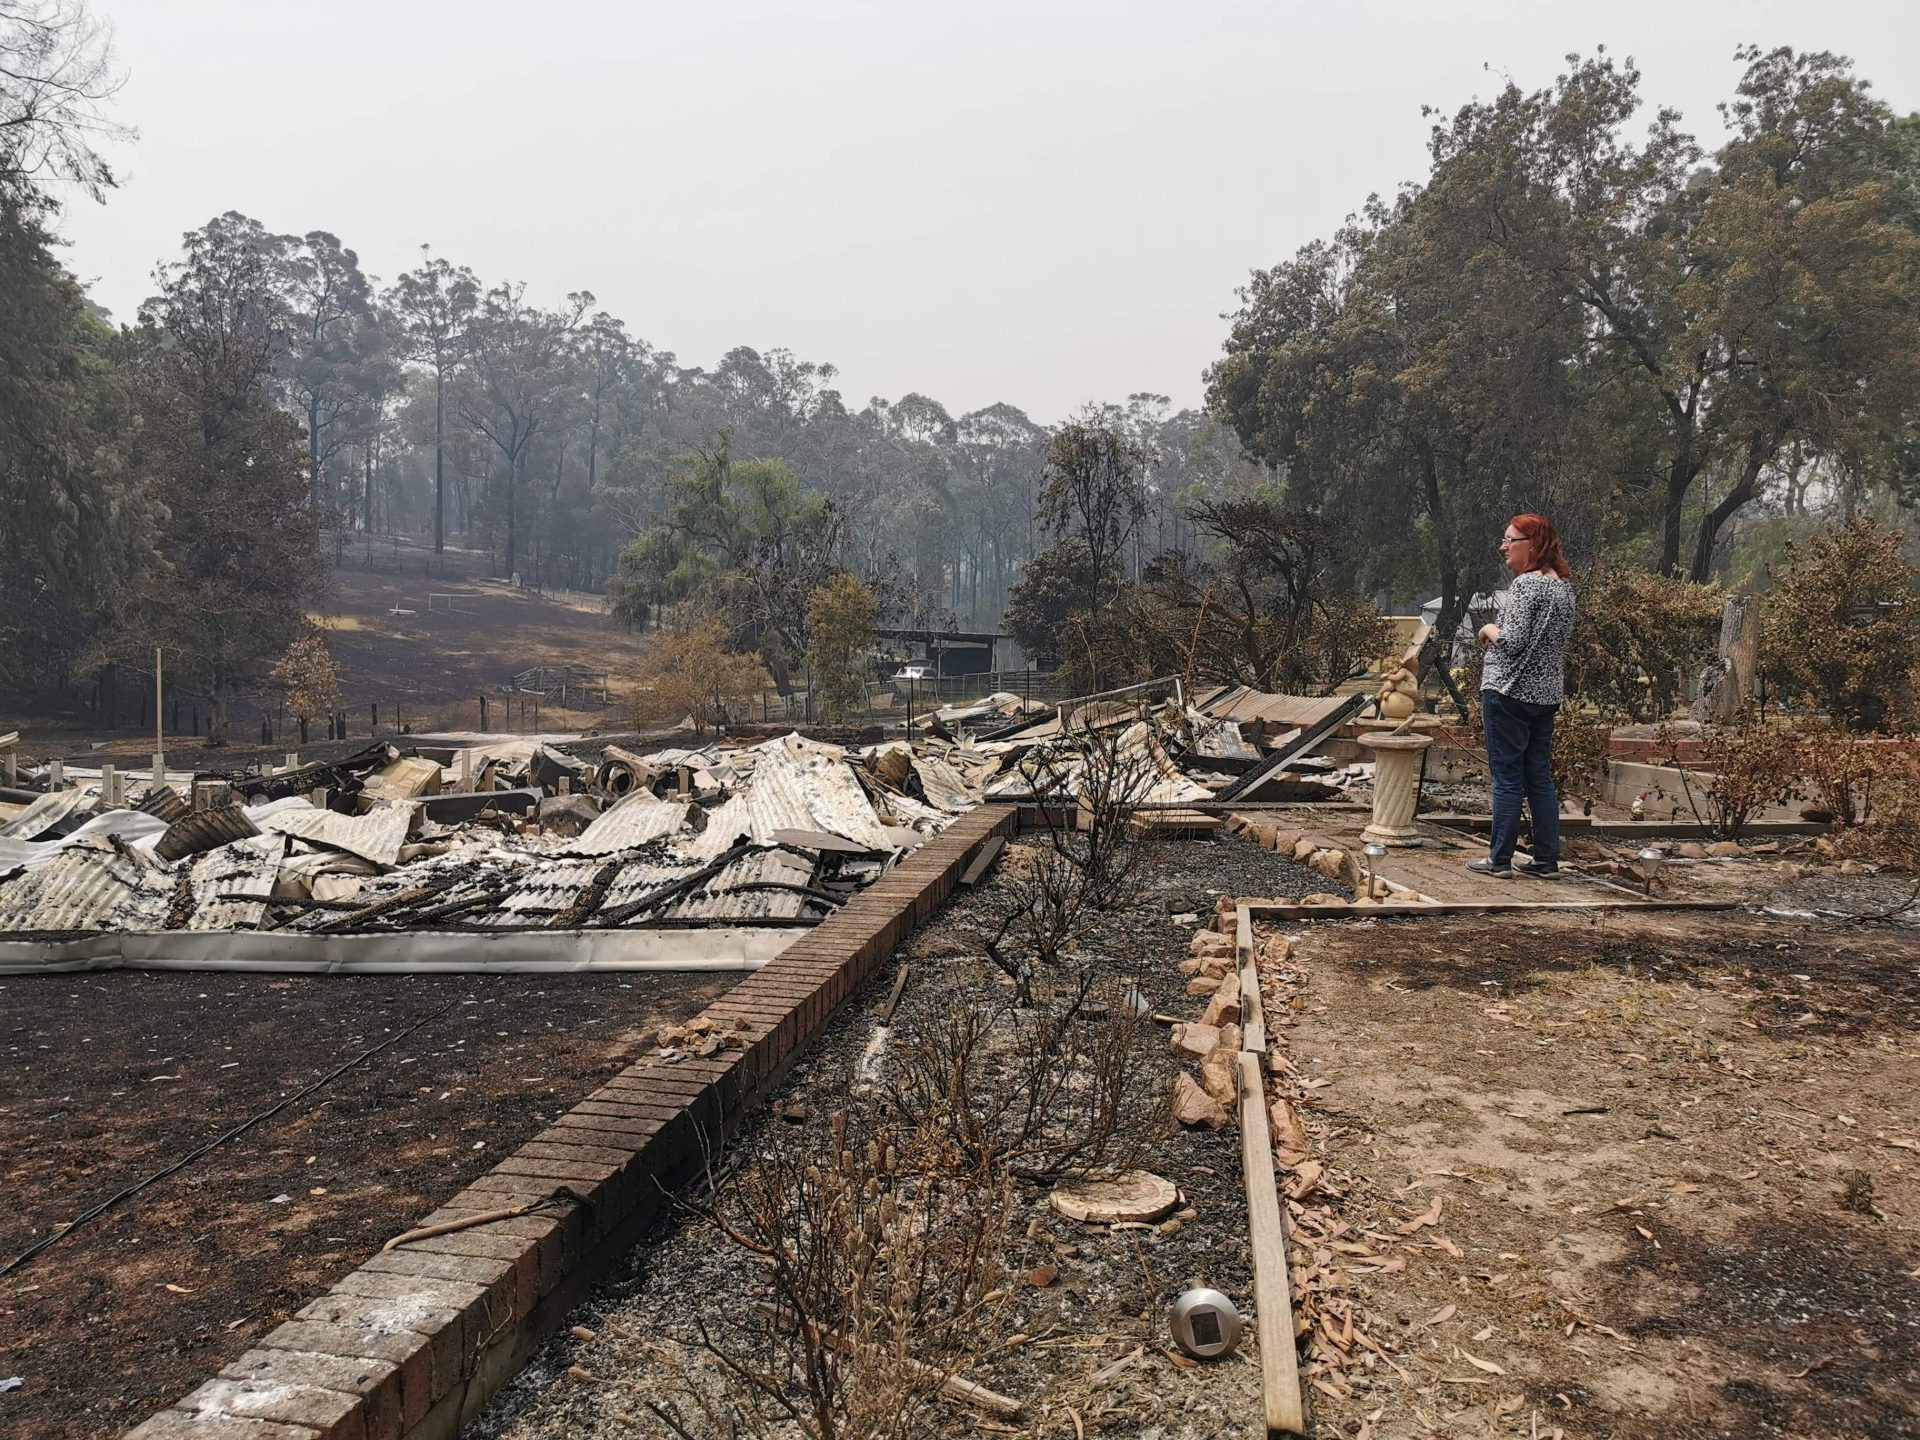 A woman looking over rubble from a property destroyed by a bush fire.